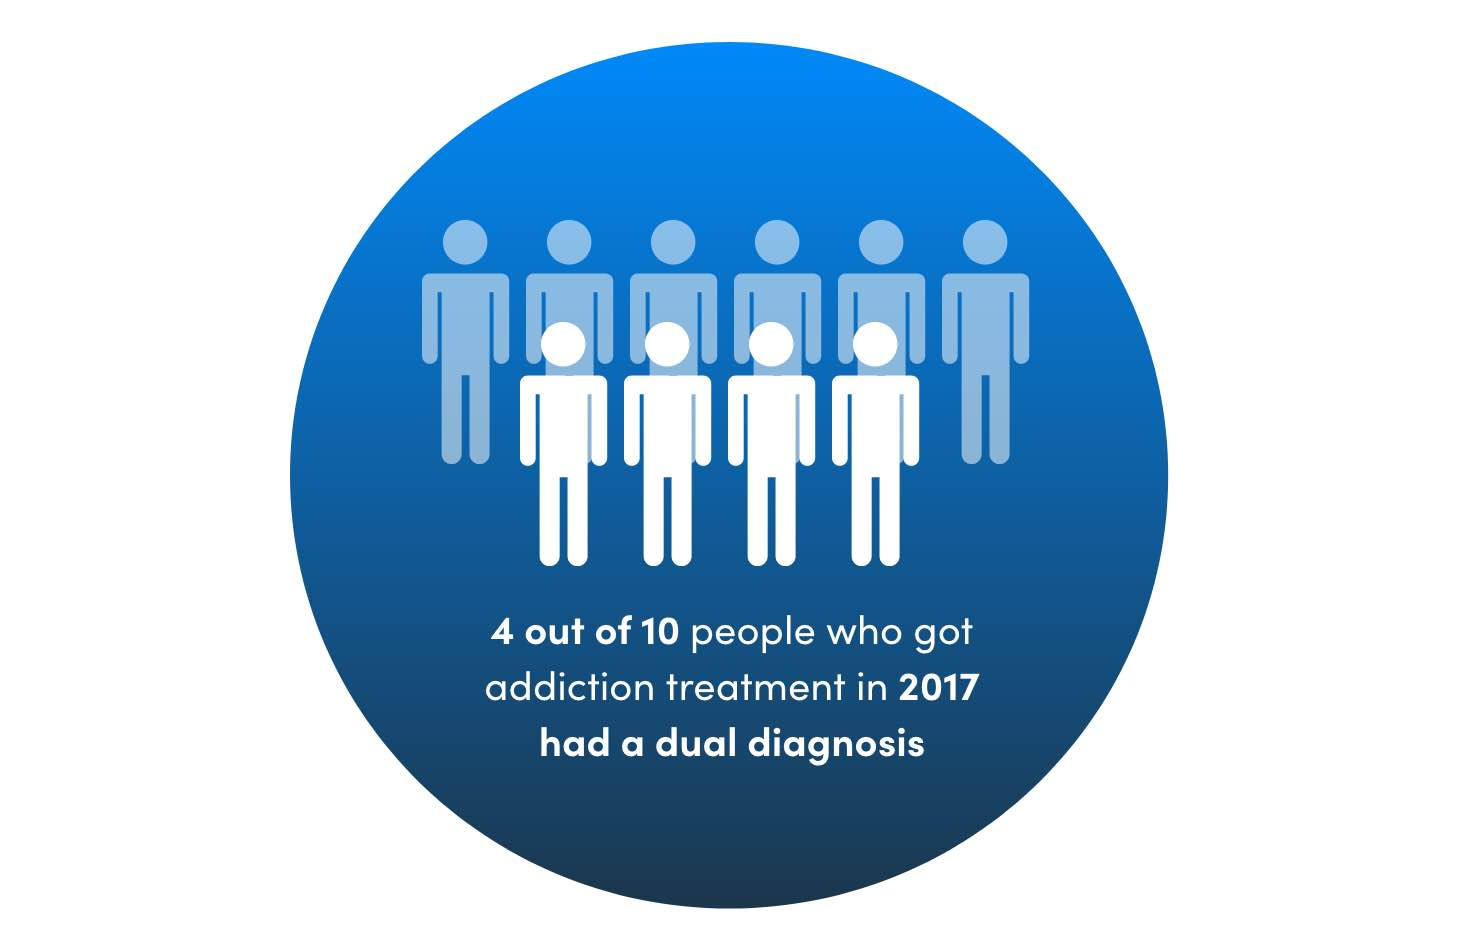 4 Out Of 10 People Who Went To Rehab Had A Dual Diagnosis